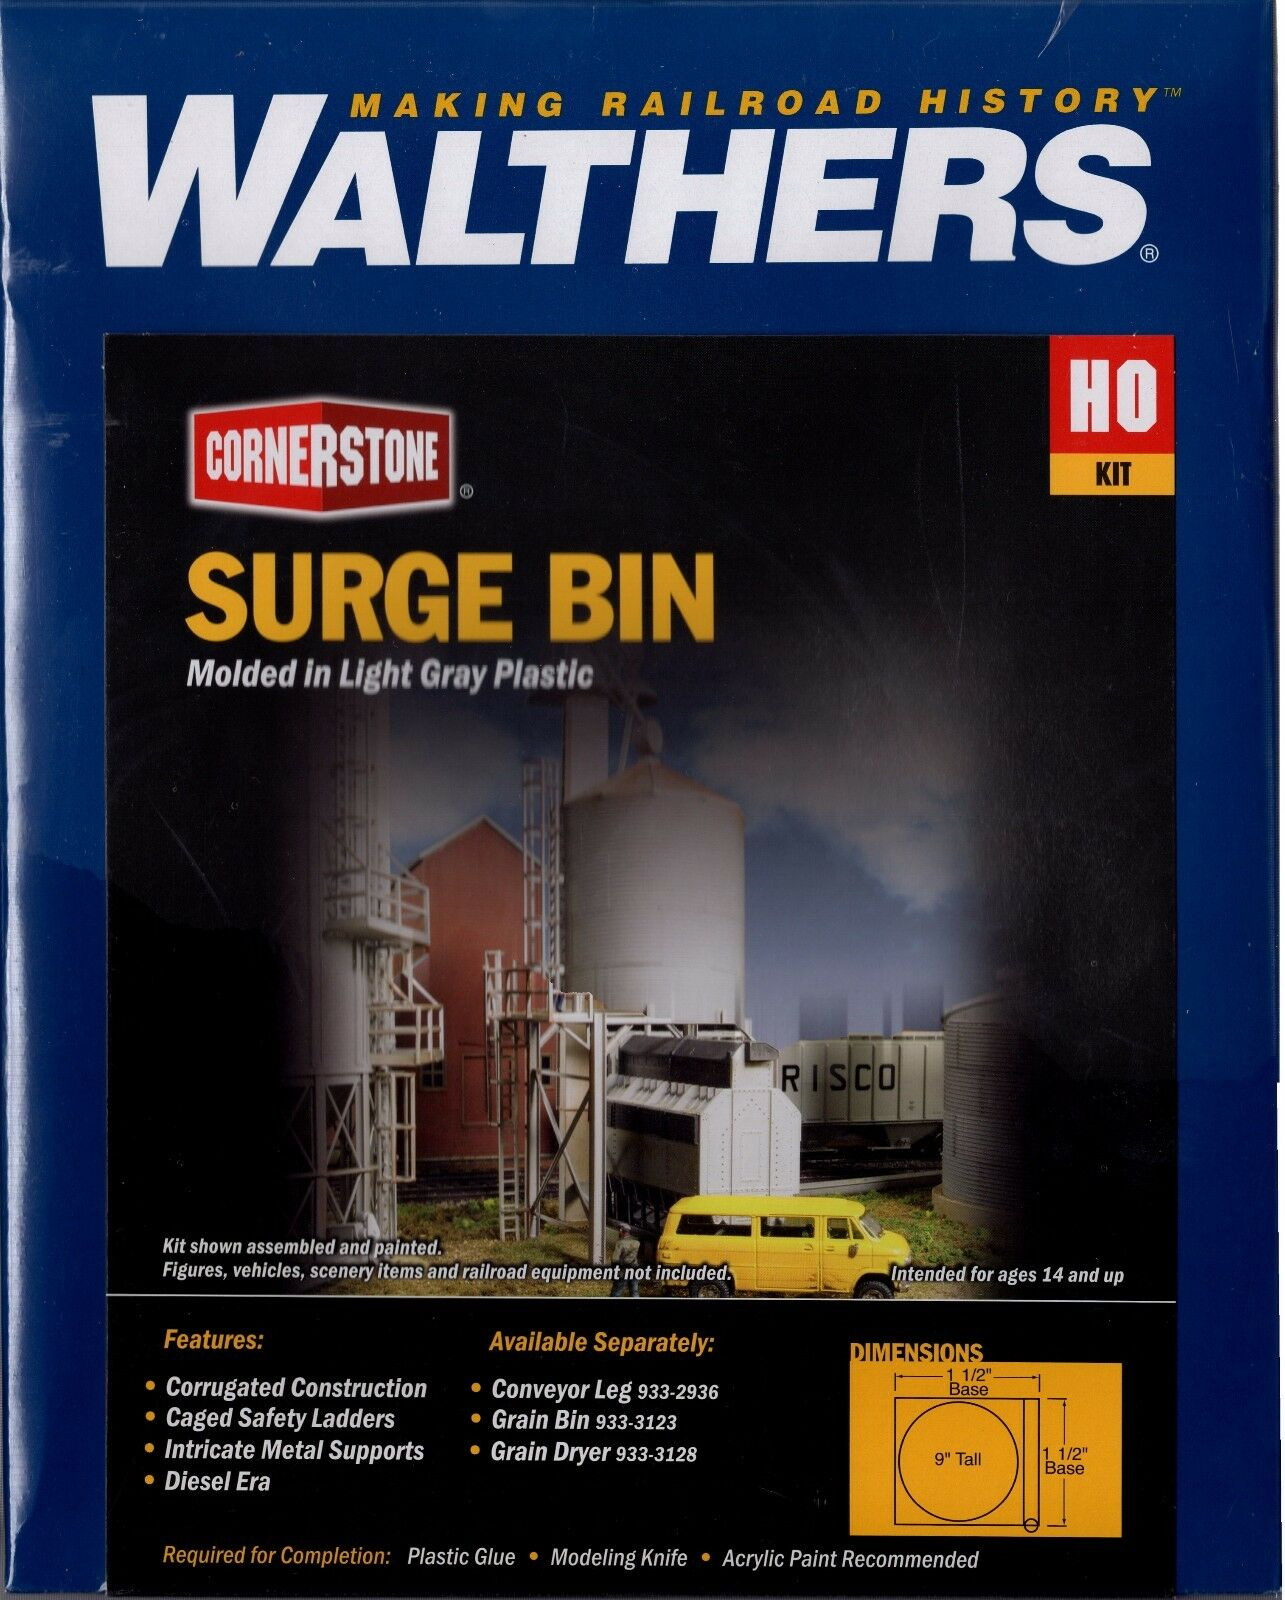 HO Scale Walthers Cornerstone 933-2935 Grain Surge Bin Building Kit